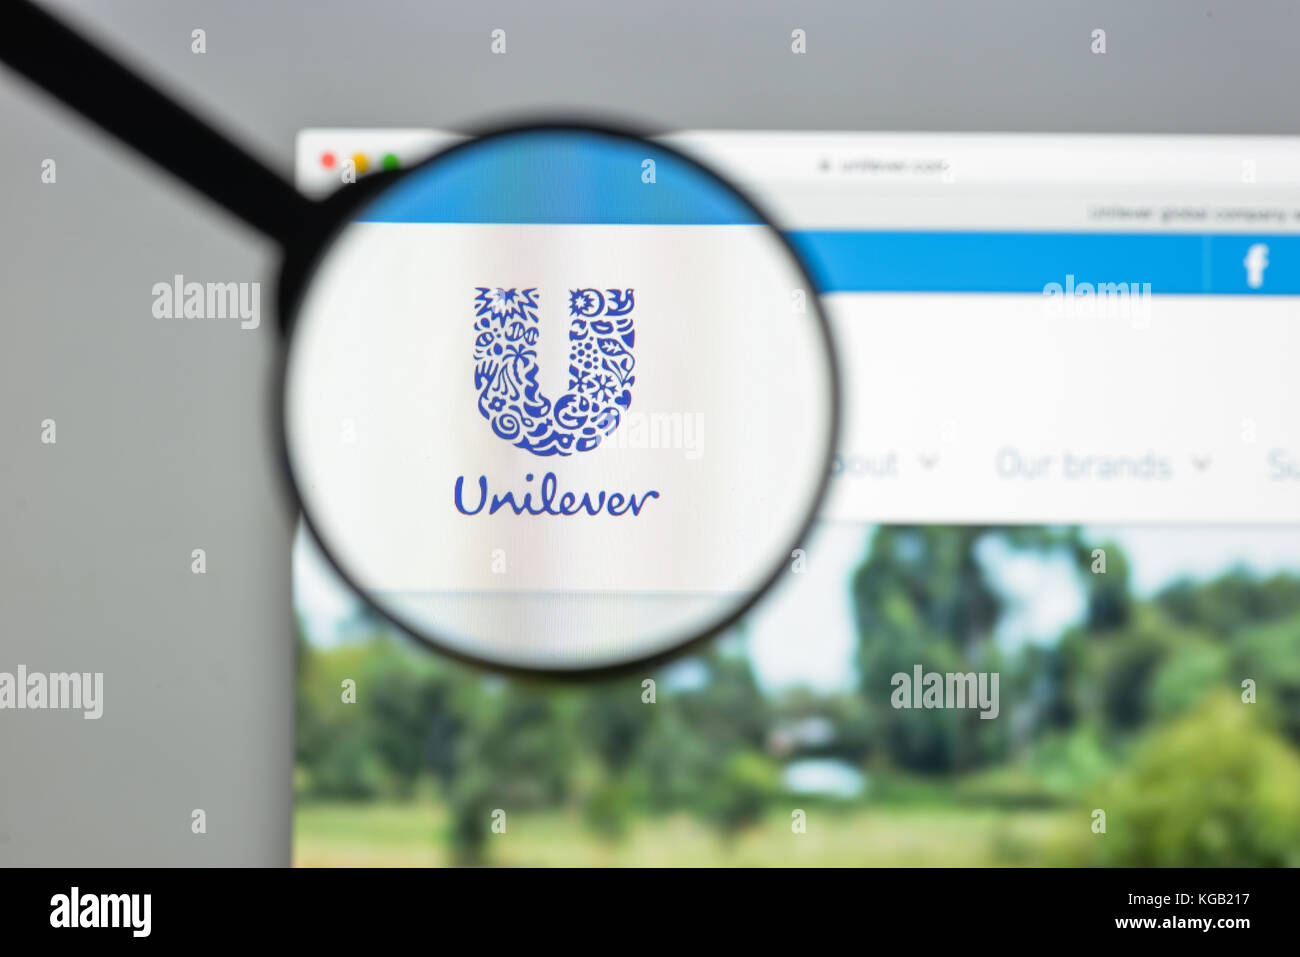 Milan, Italy - August 10, 2017: Unilever website homepage. It is a Dutch-British transnational consumer goods company. - Stock Image